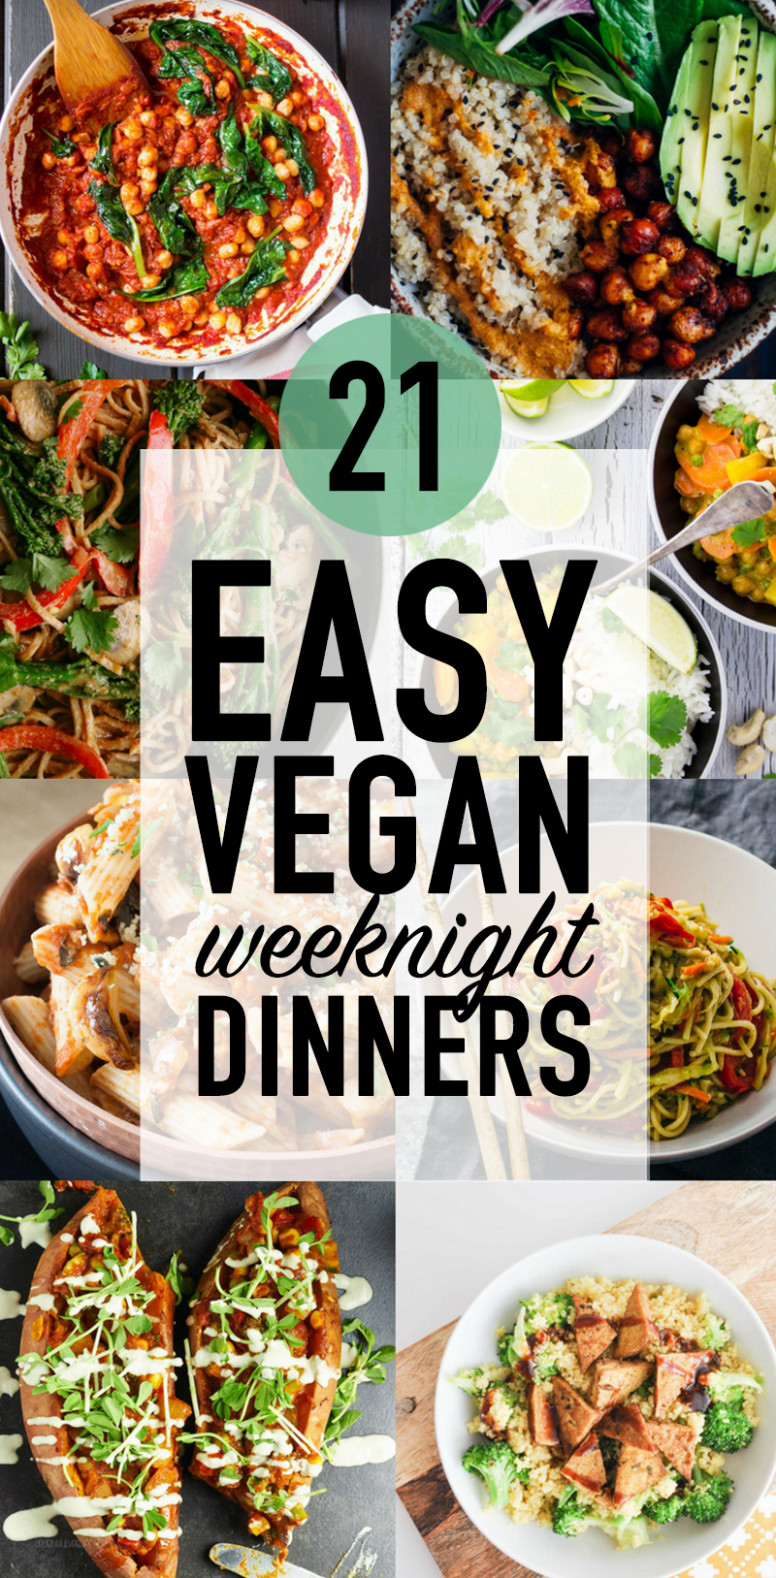 21 Easy Vegan Weeknight Dinners - Wallflower Kitchen - recipes list for dinner